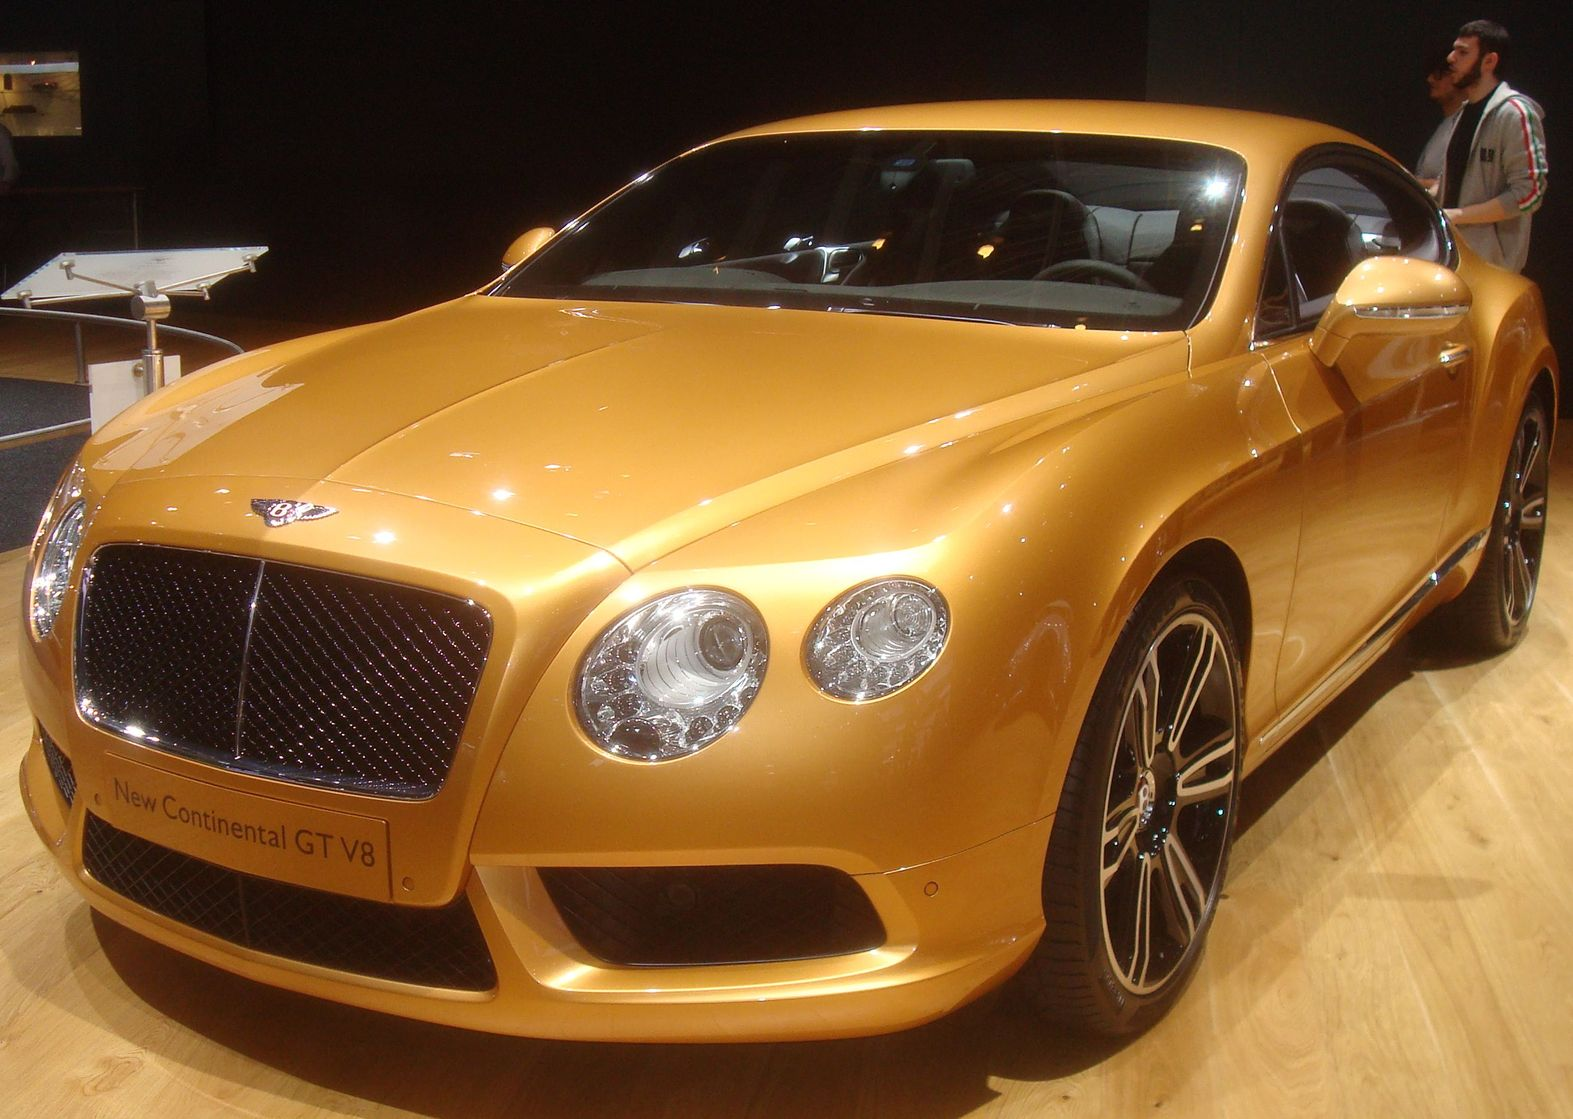 bentley continental gt v8 uk salon de l automobile. Black Bedroom Furniture Sets. Home Design Ideas